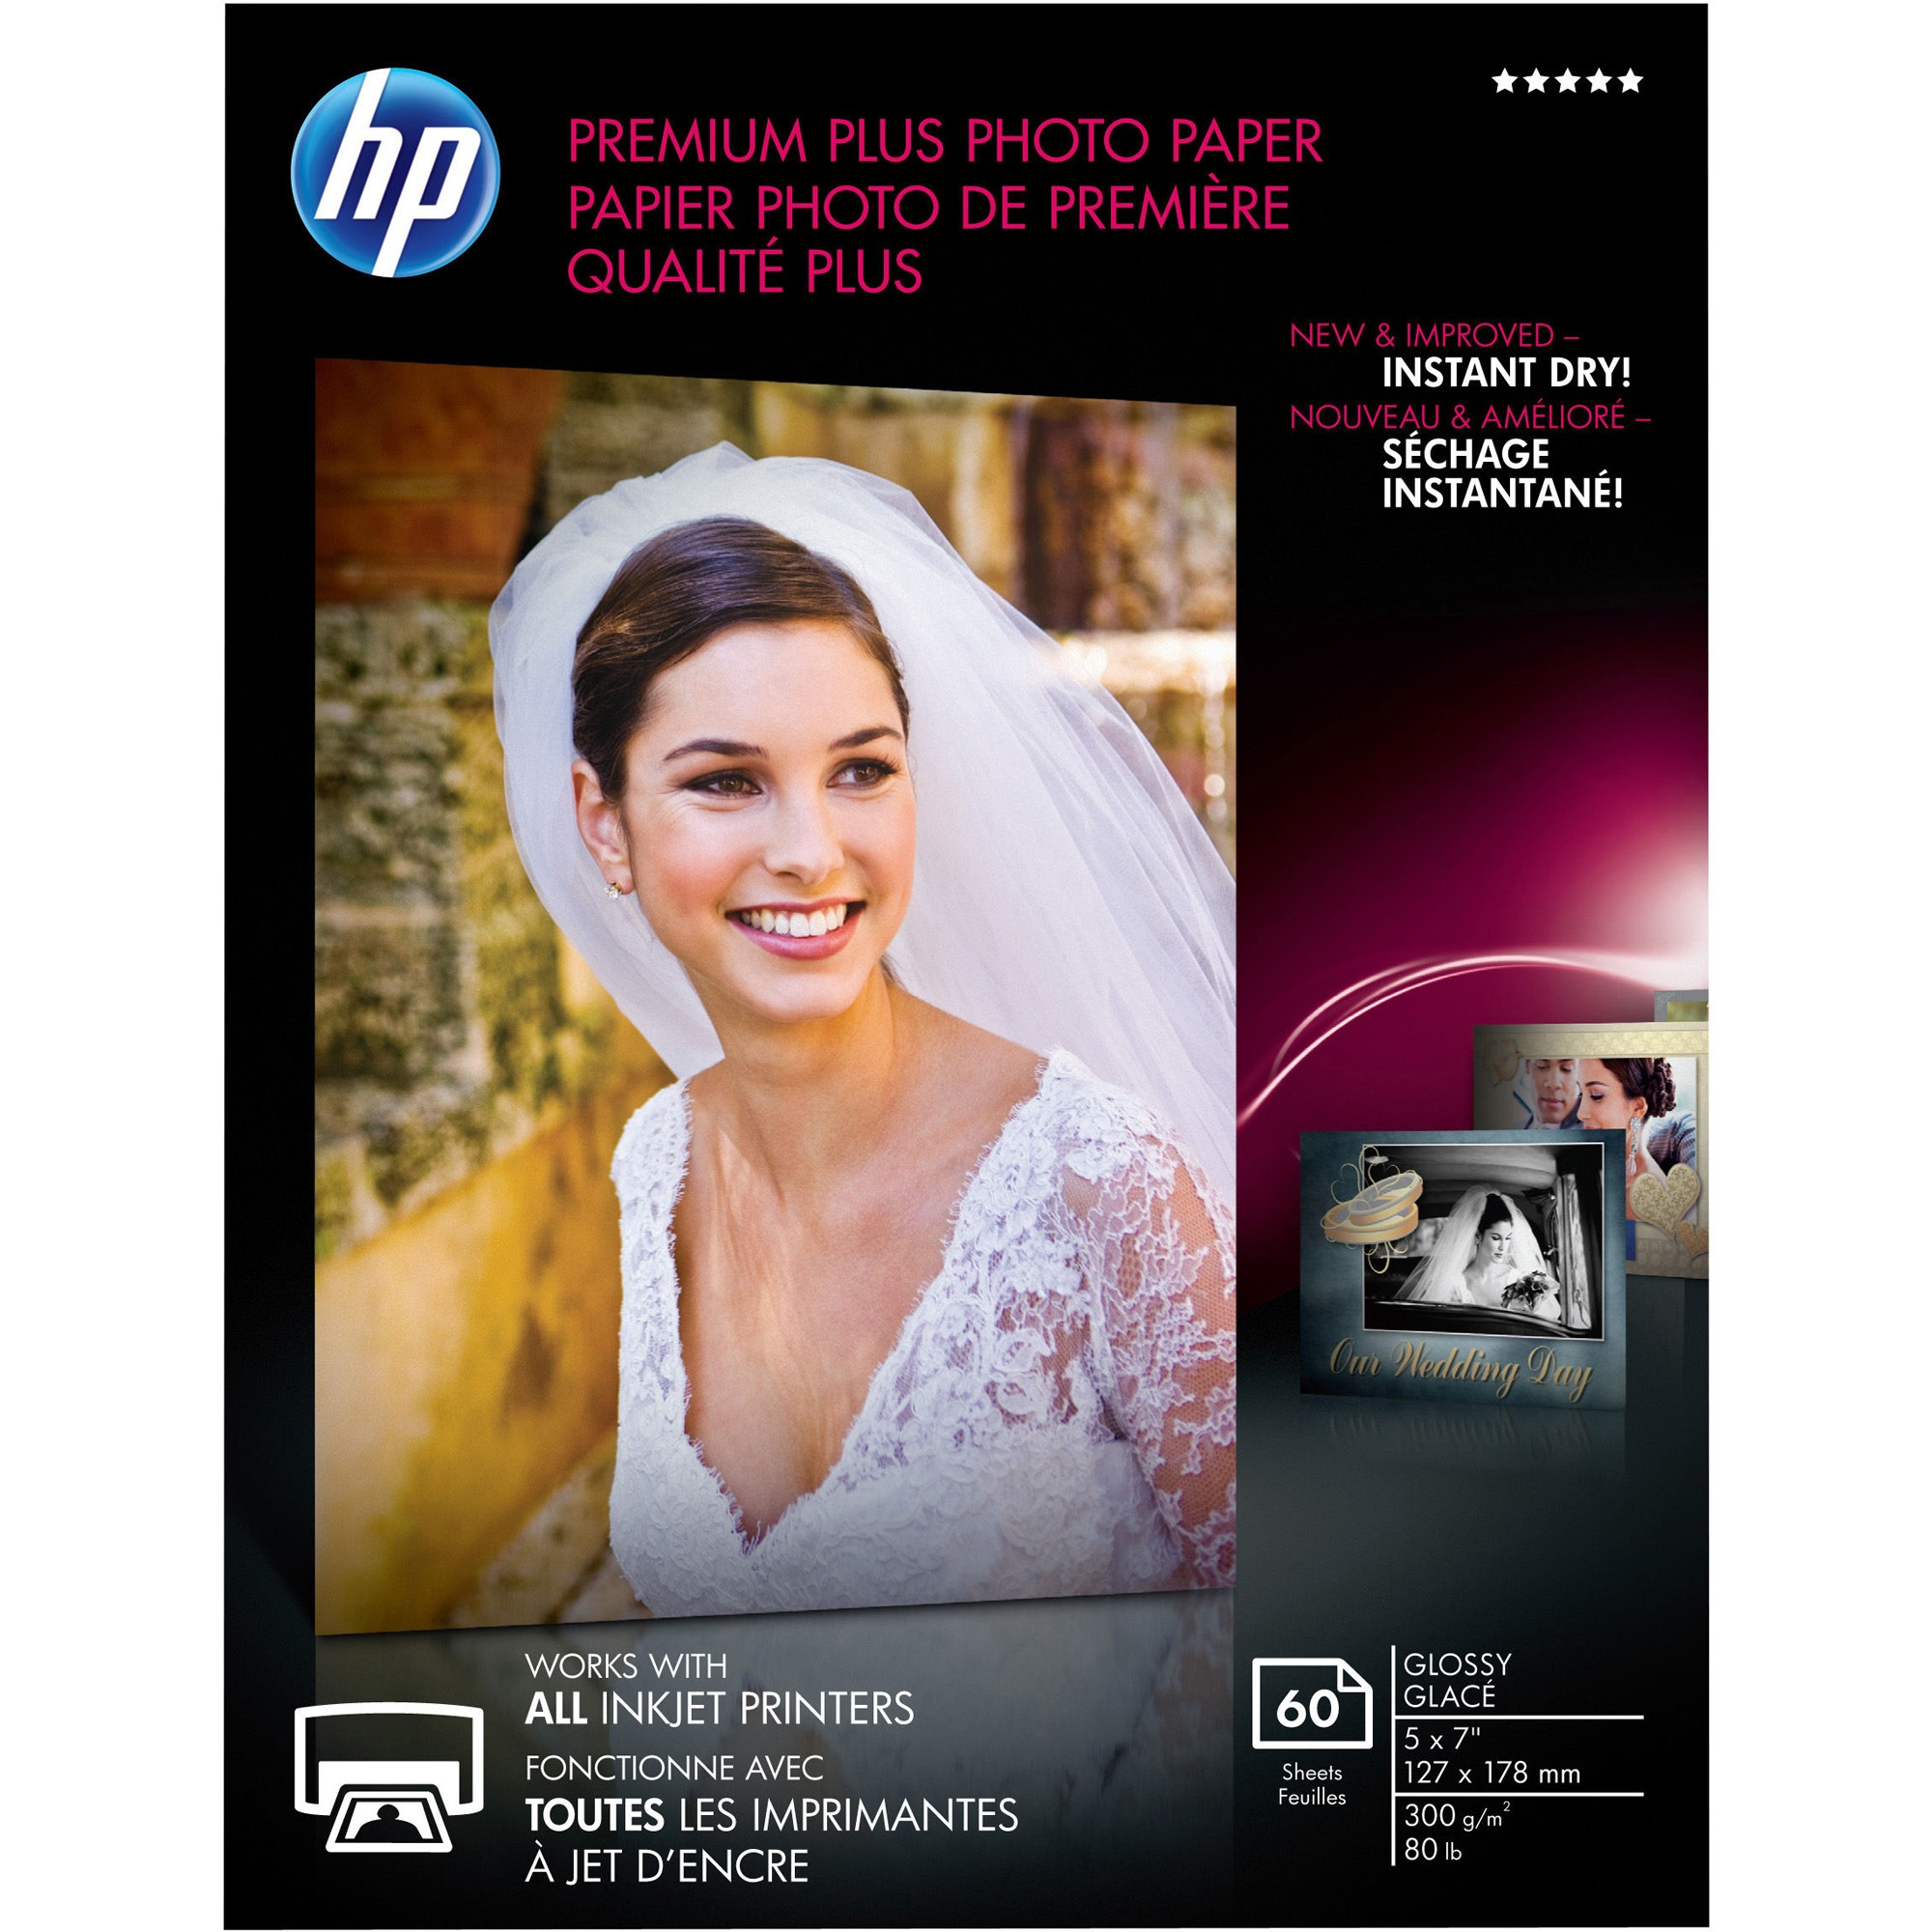 HP Premium Plus Inkjet Print Photo Paper, White, 60 / Pack (Quantity)